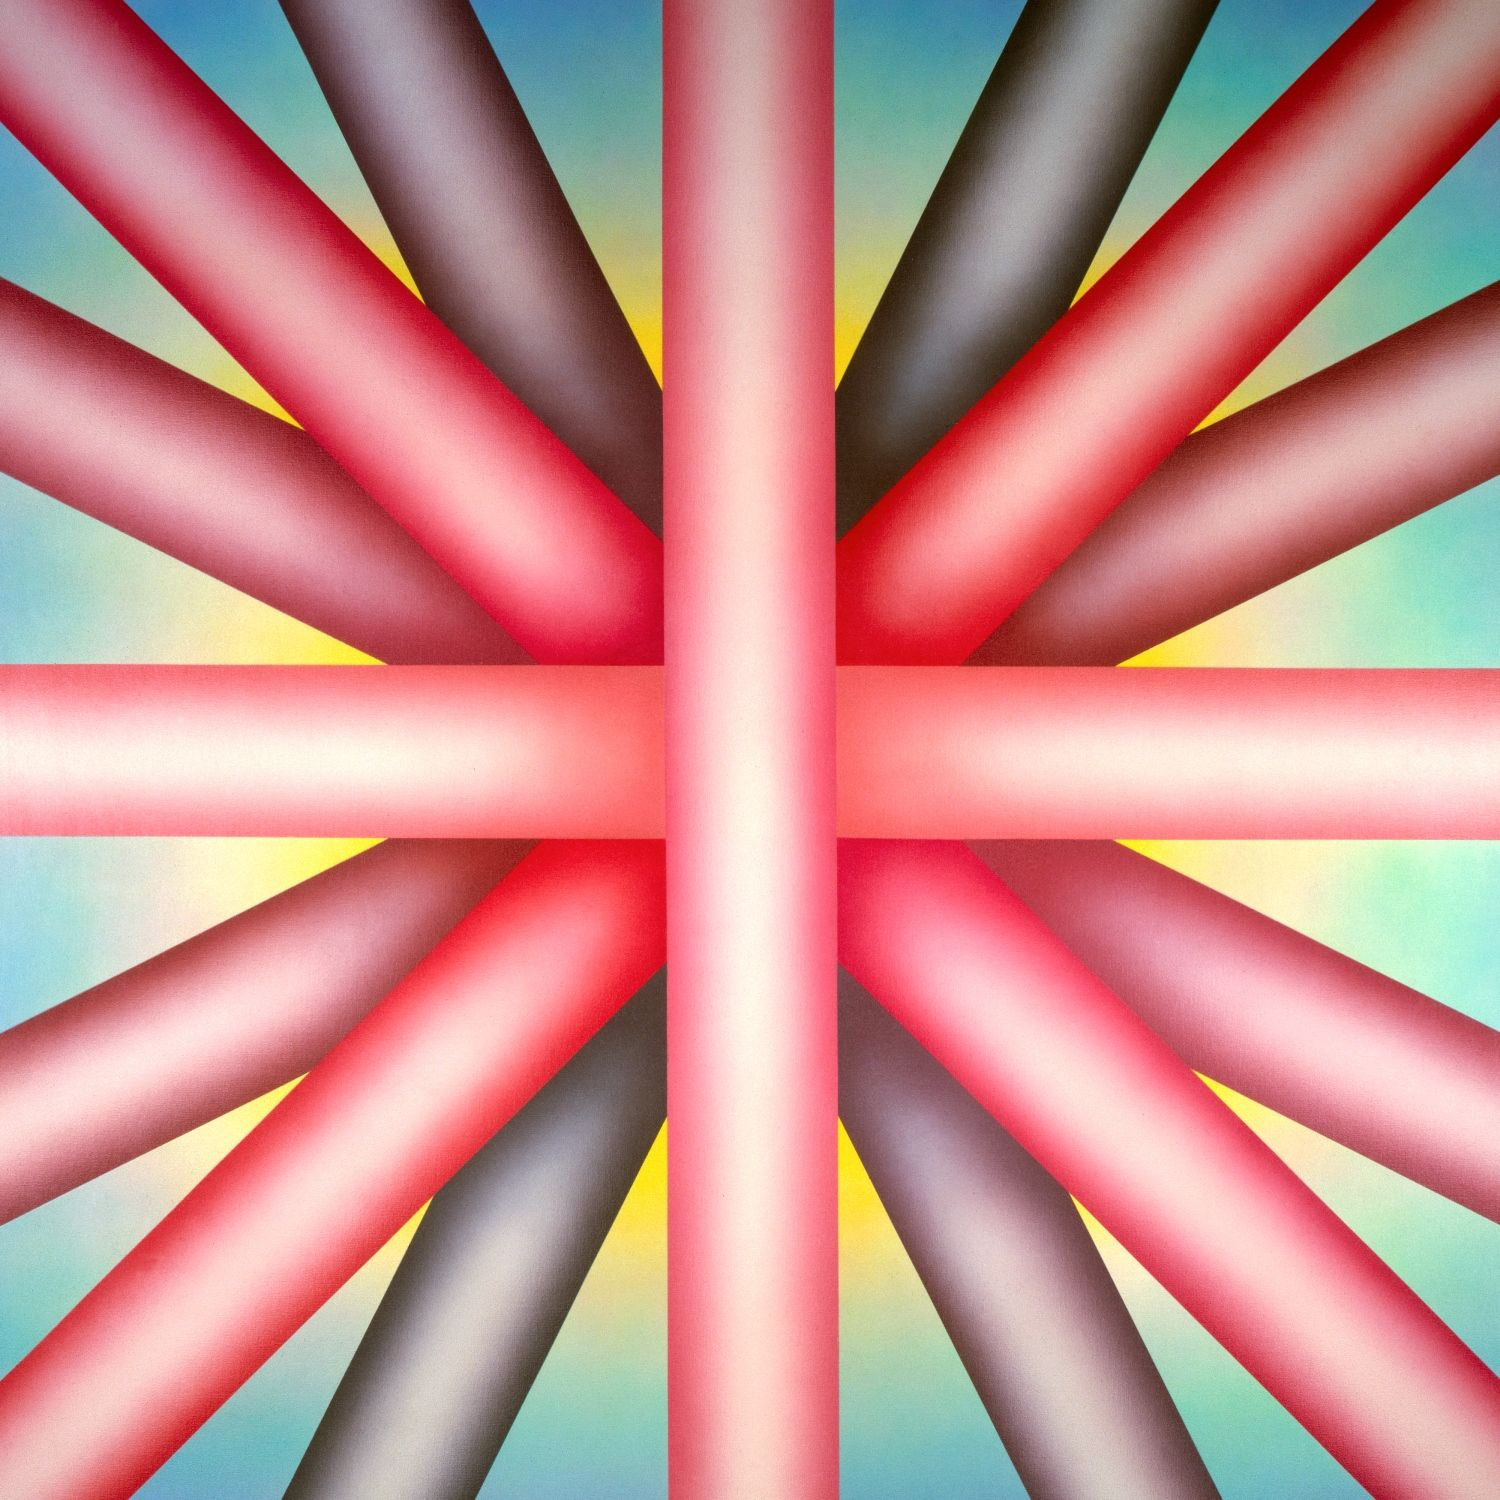 Judy Chicago (American, b. 1939). Heaven is for White Men Only, 1973. Sprayed acrylic on canvas, 80 x 80 in. (203.2 x 203.2 cm). New Orleans Museum of Art, Gift of the Frederick R. Weisman Art Foundation, 93.12. © Judy Chicago. Photo: © Donald Woodman